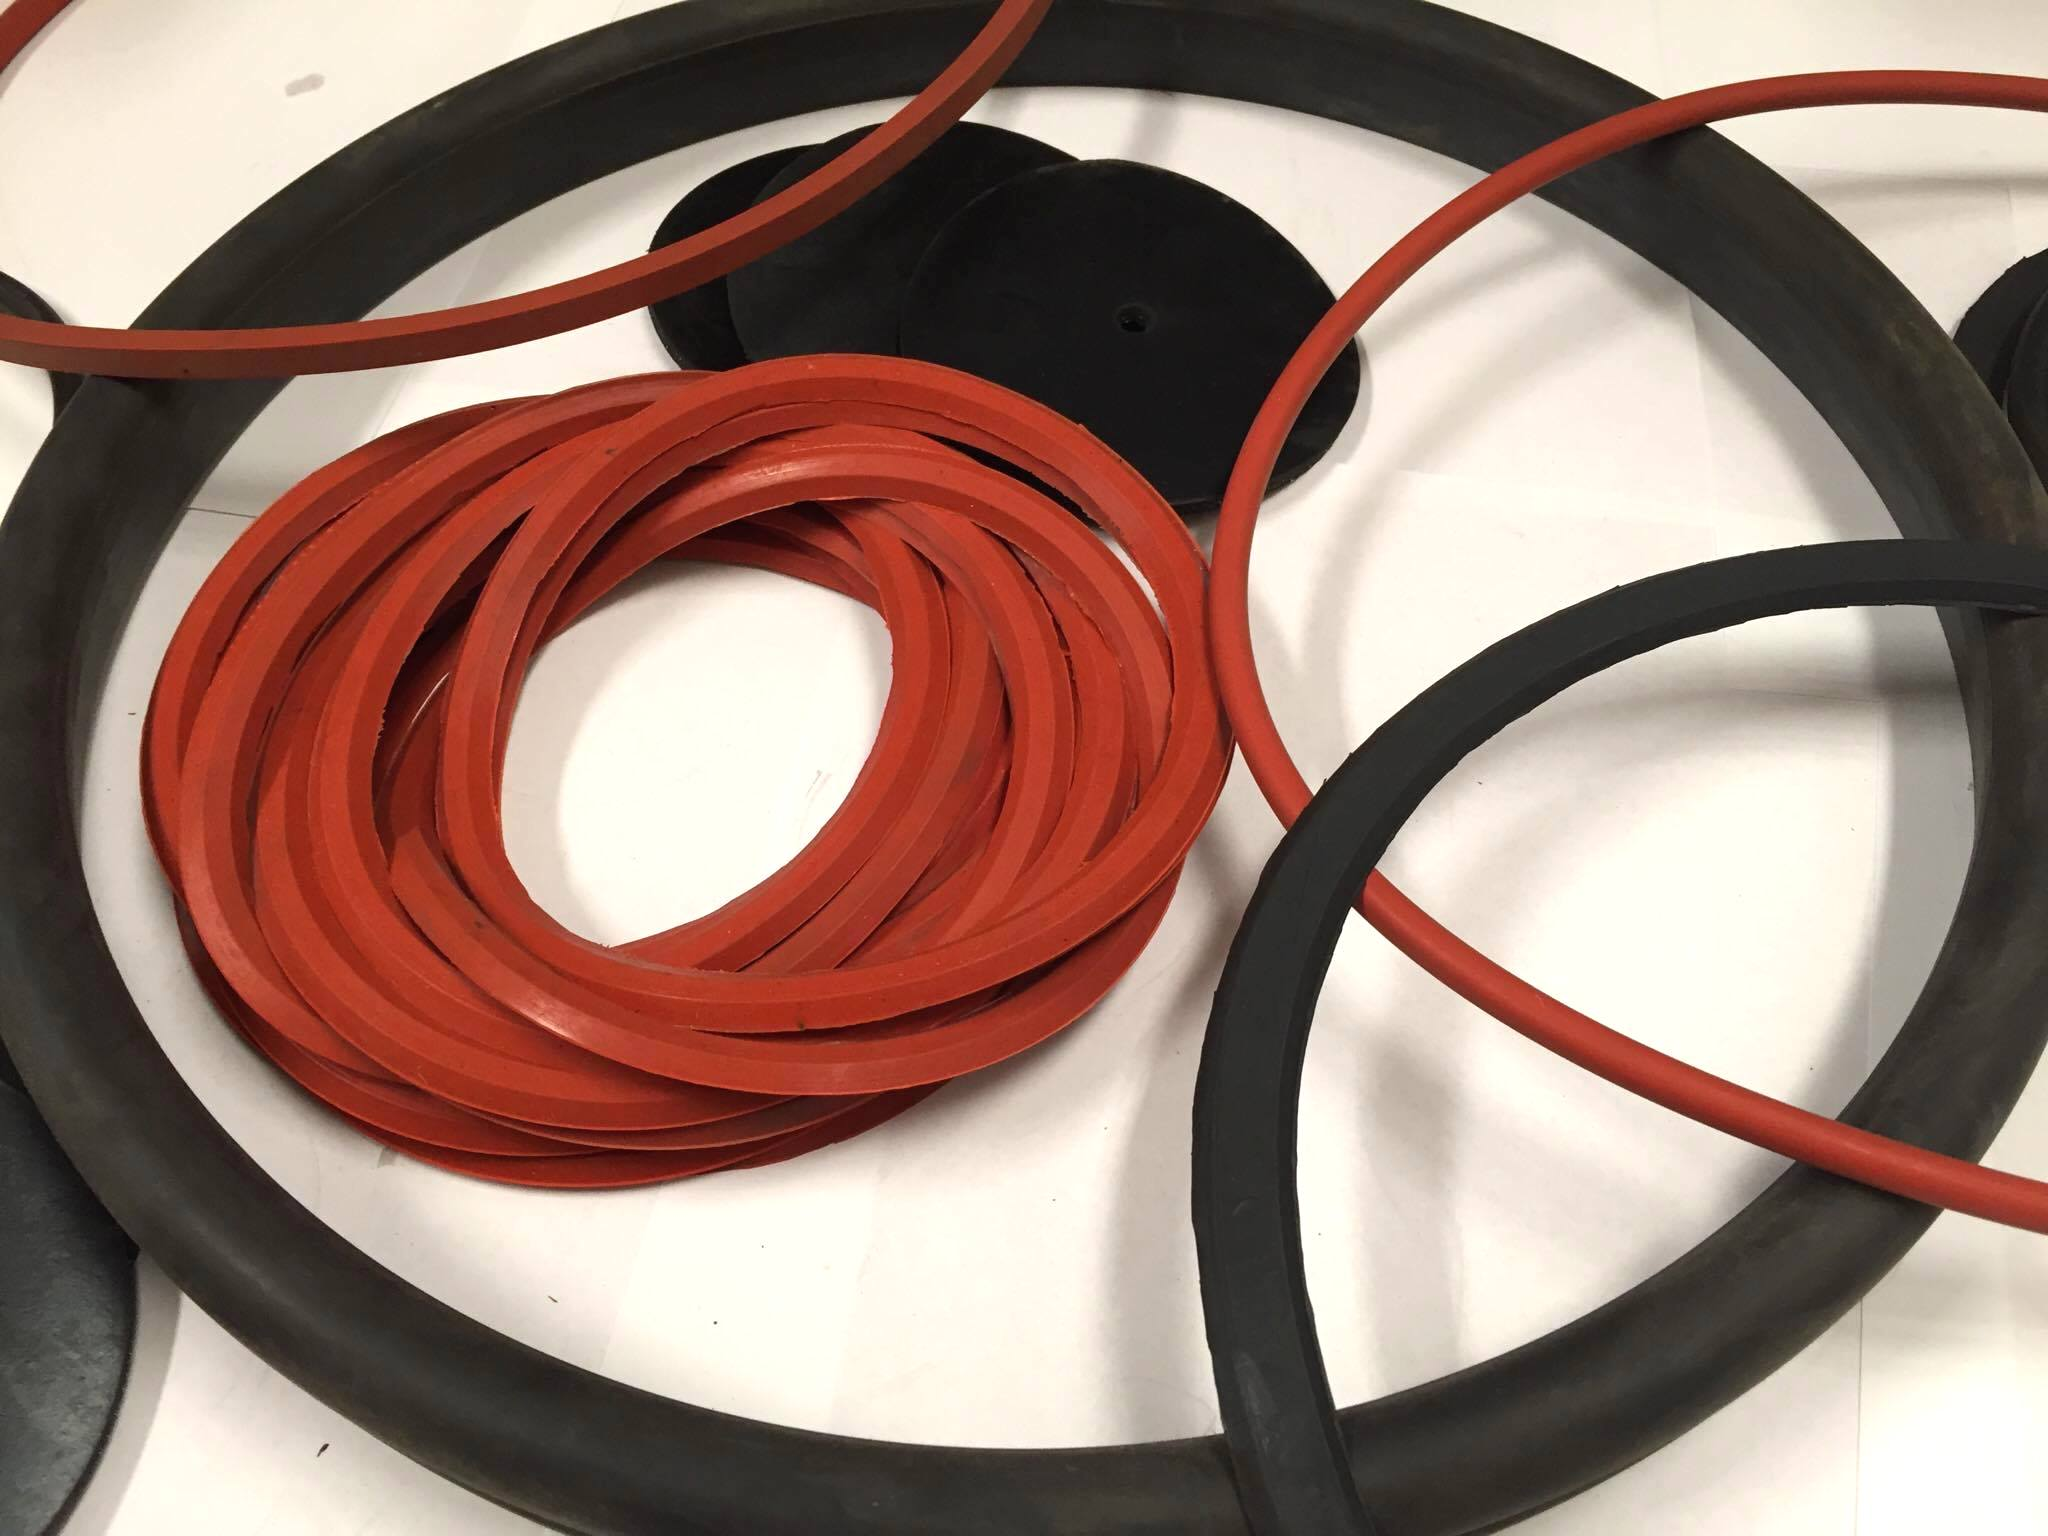 Cdj Rubber Products Rubber Gasket Seals O Rings And